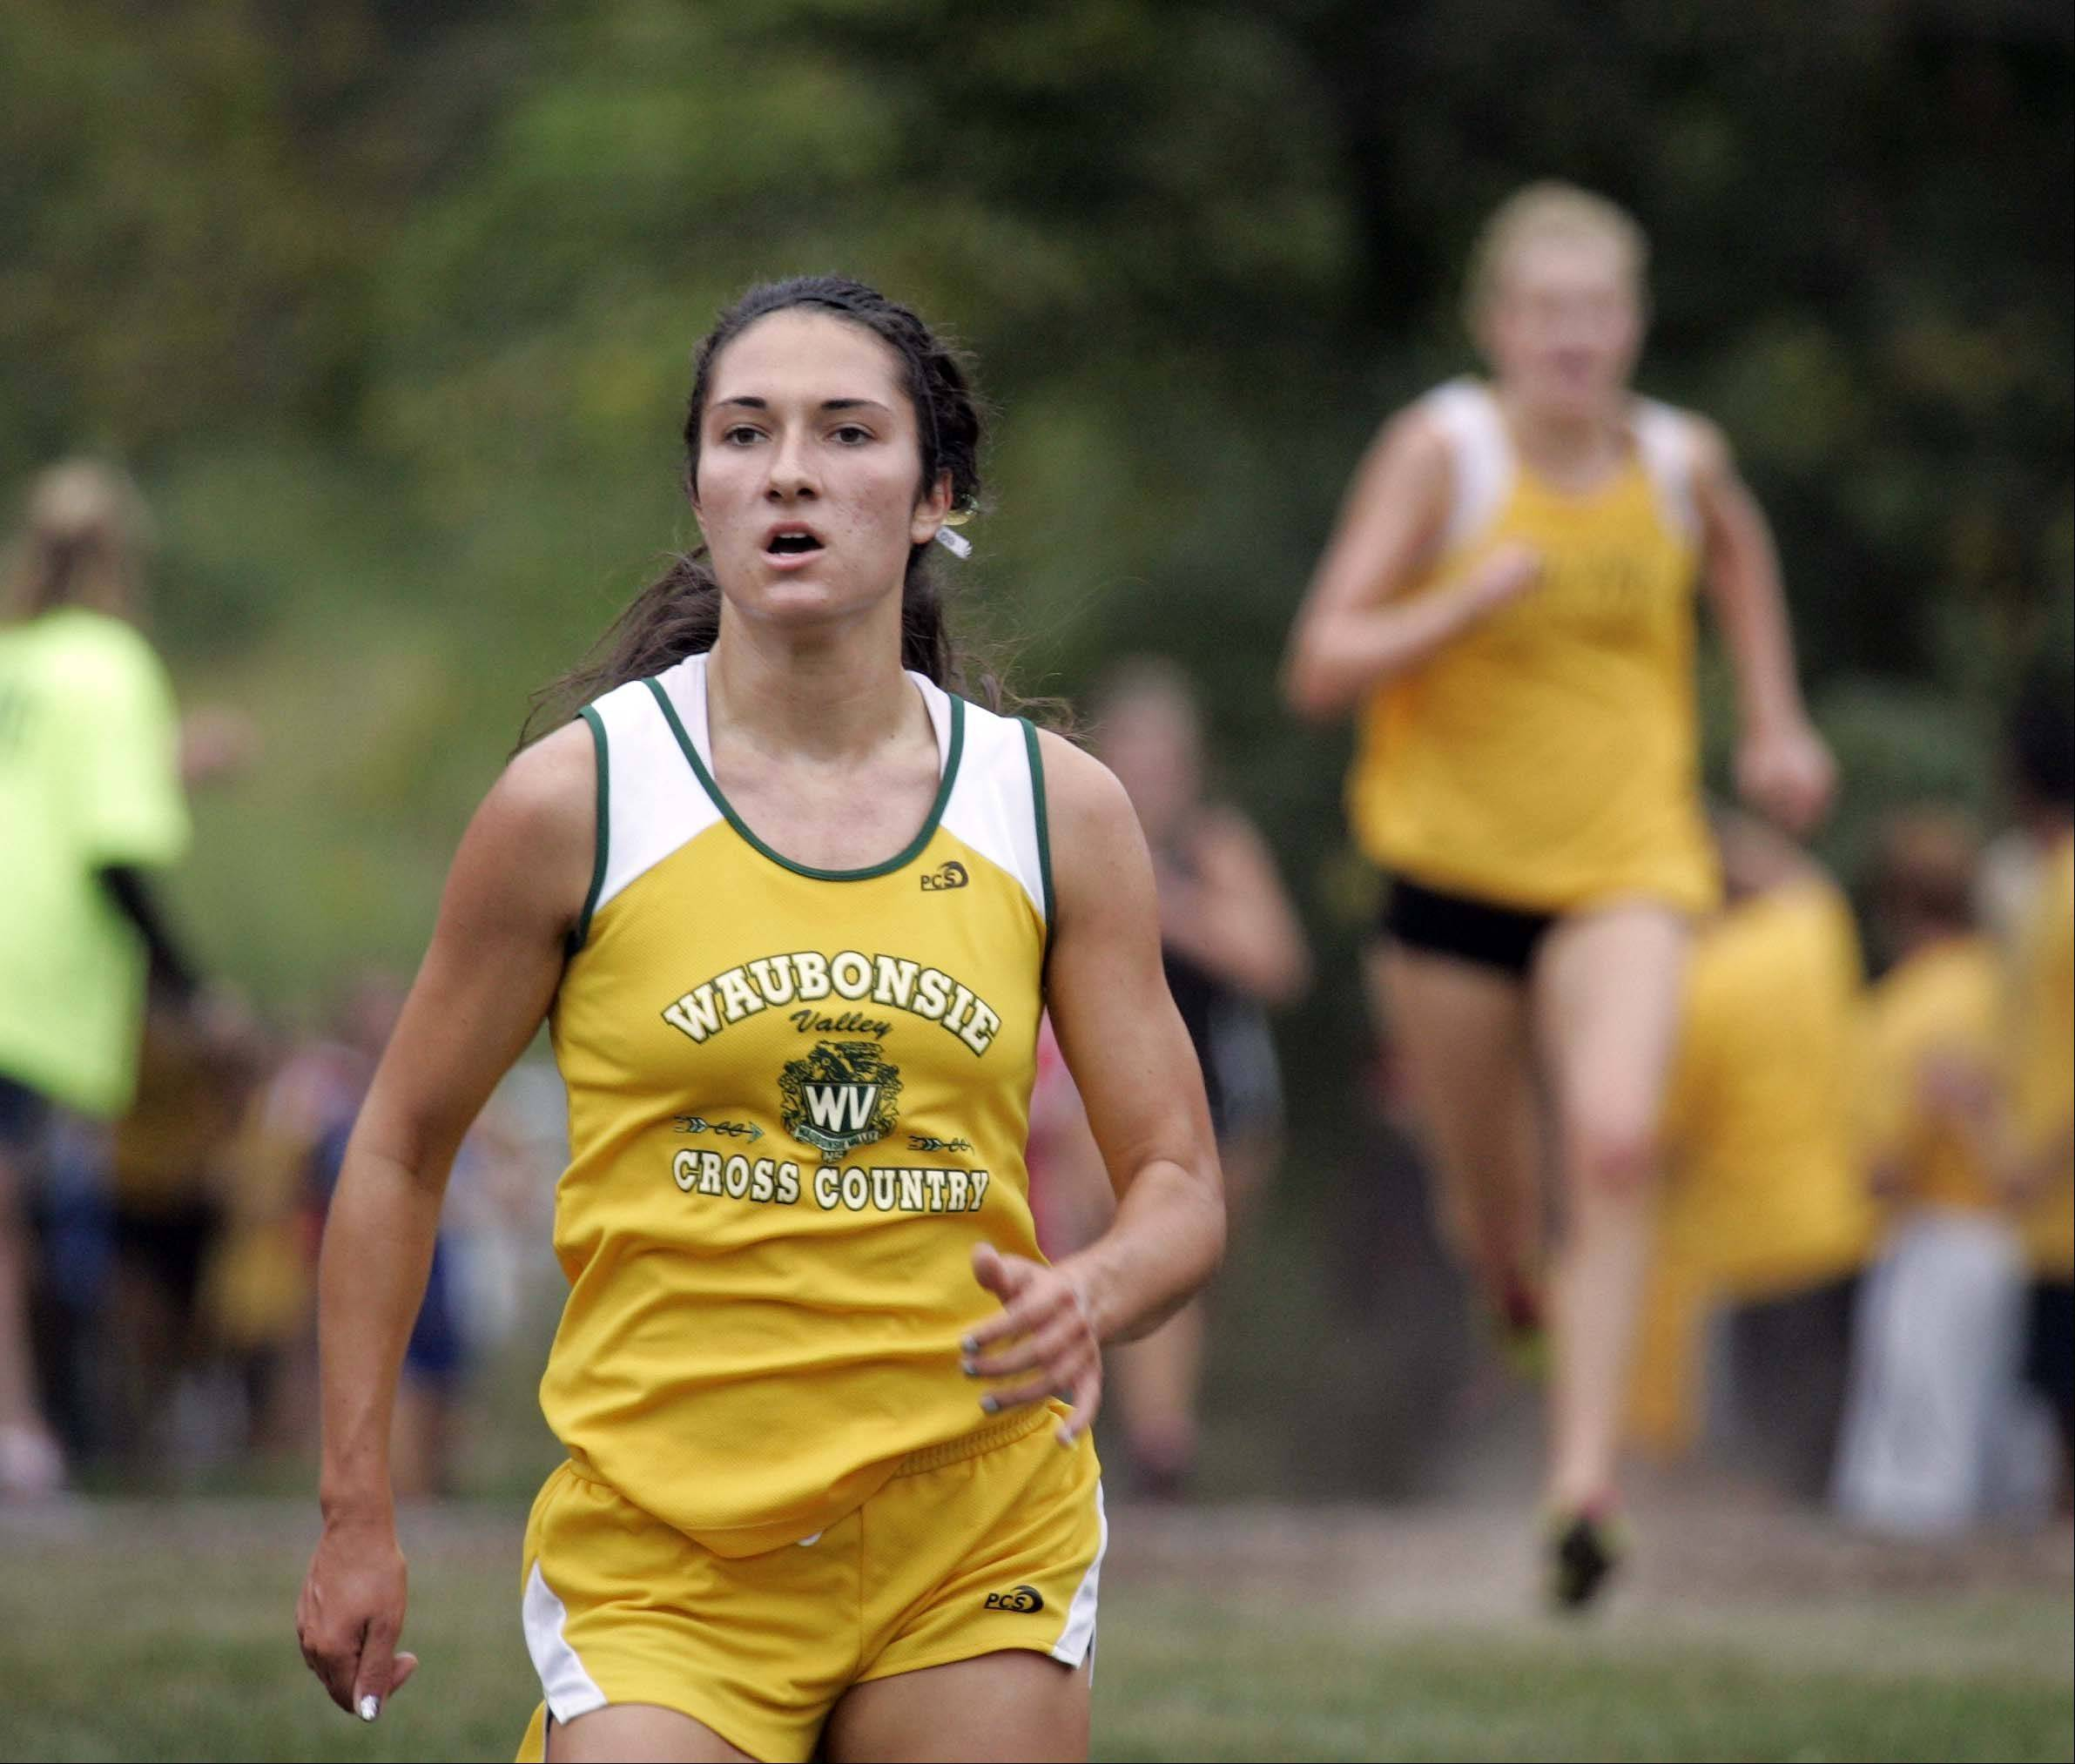 Waubonsie Valley's Ashley Brunner races to seventh place during the girls varsity race at the St. Charles East cross country meet at LeRoy Oakes in St. Charles Saturday September 1, 2012.